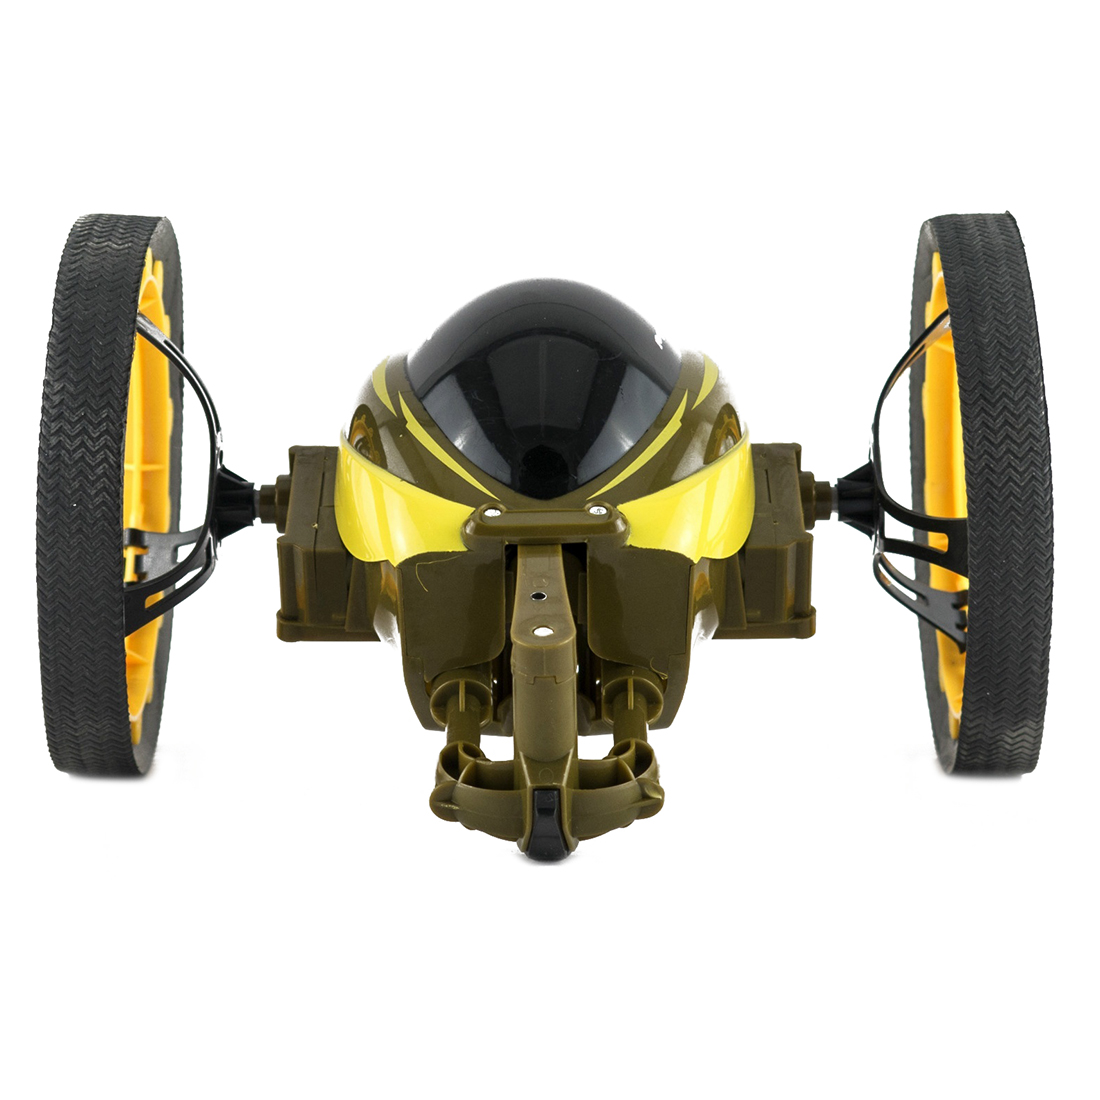 2.4GHz Car Jumping Sumo Remote Control with high-definition